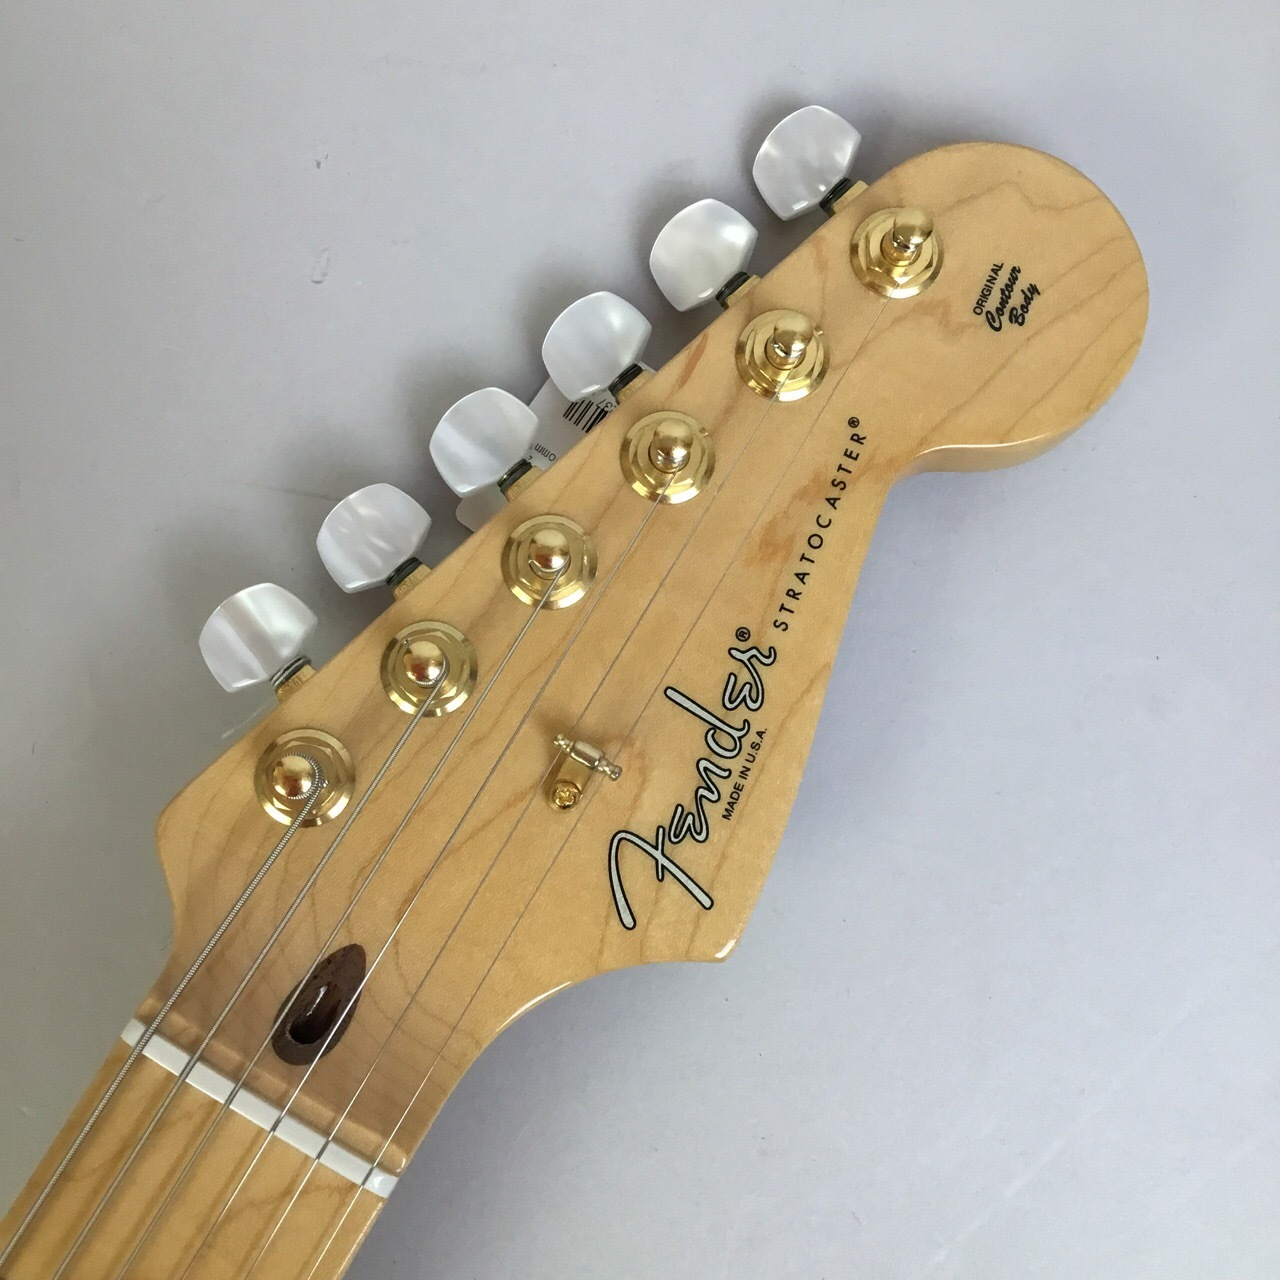 60th Anniversary Commemorative Stratocaster【60周年限定モデル】のヘッド画像